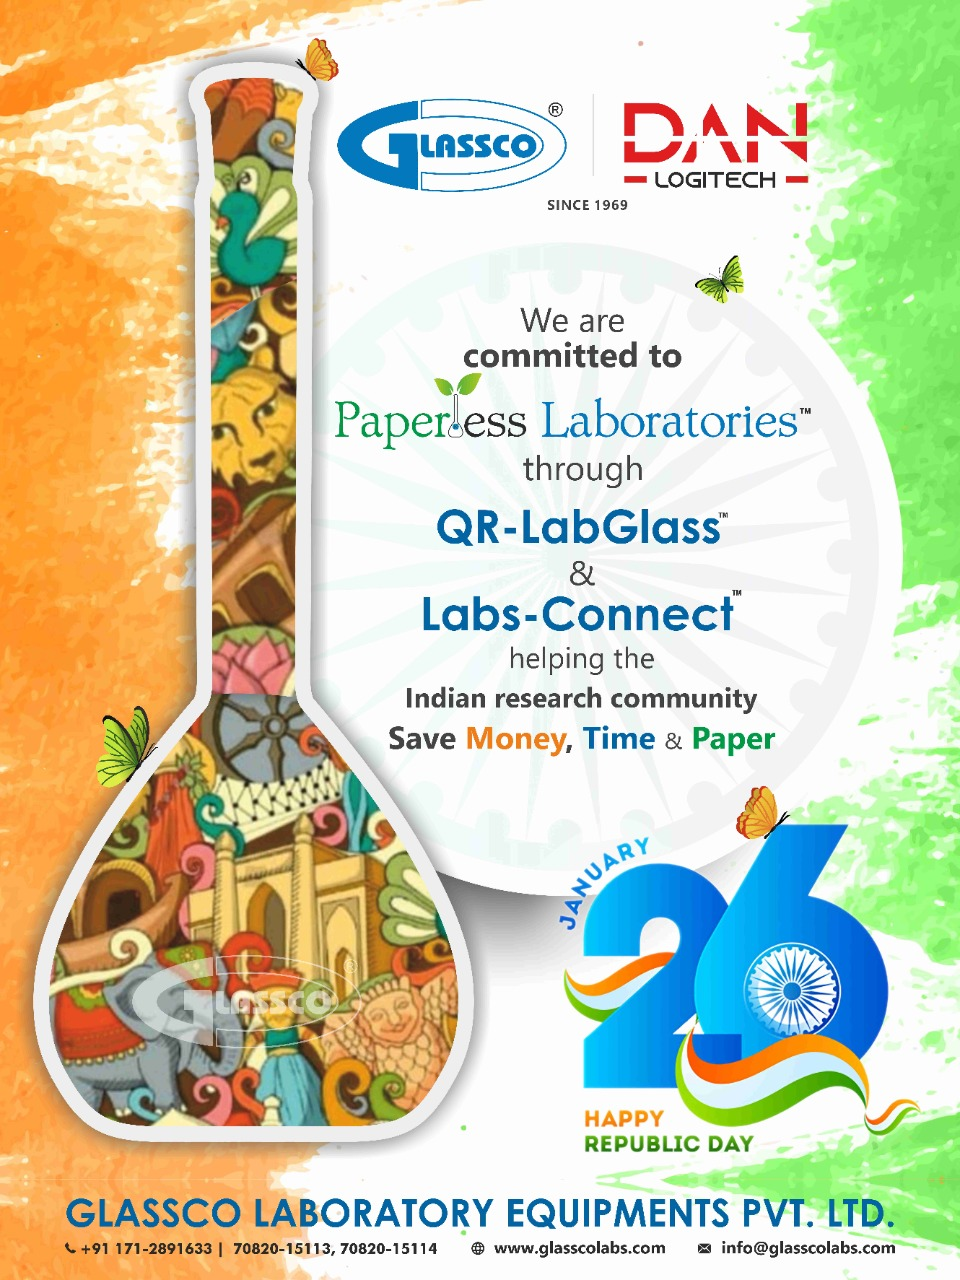 Wishing You All Very Happy Republic Day. #glassco #glasscolabs #paperlesslaboratories #qrlabglass #labglassware #borosilicate #labglass #bestlabglass #india #republicday2020 #republicday #labsconnect #Danlogitech #savemoney #savepaper #saveplanet #savetime #researchanddevelopment #researchcommunity #indian #wishing